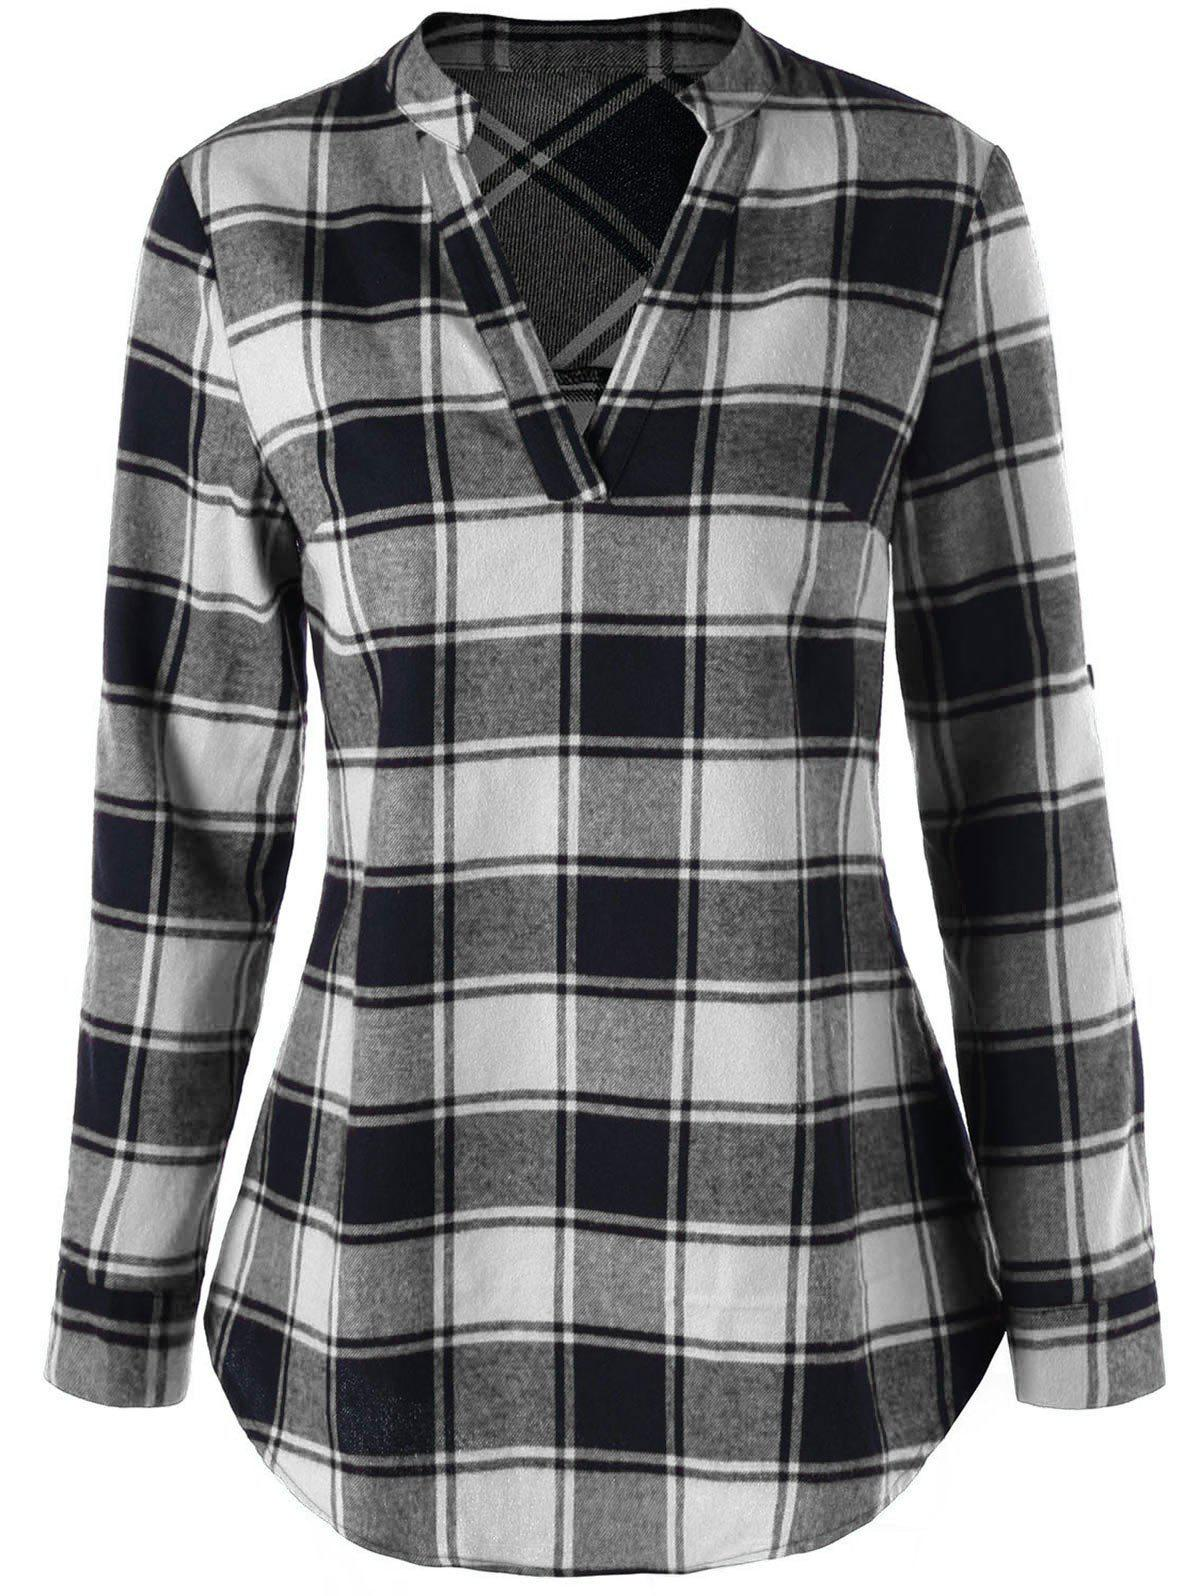 Split Neck Curved Hem Plaid BlouseWOMEN<br><br>Size: 2XL; Color: BLACK + WHITE; Occasion: Casual; Style: Casual; Material: Rayon; Shirt Length: Long; Sleeve Length: Full; Collar: V-Neck; Pattern Type: Plaid; Season: Fall,Spring; Weight: 0.2700kg; Package Contents: 1 x Blouse;